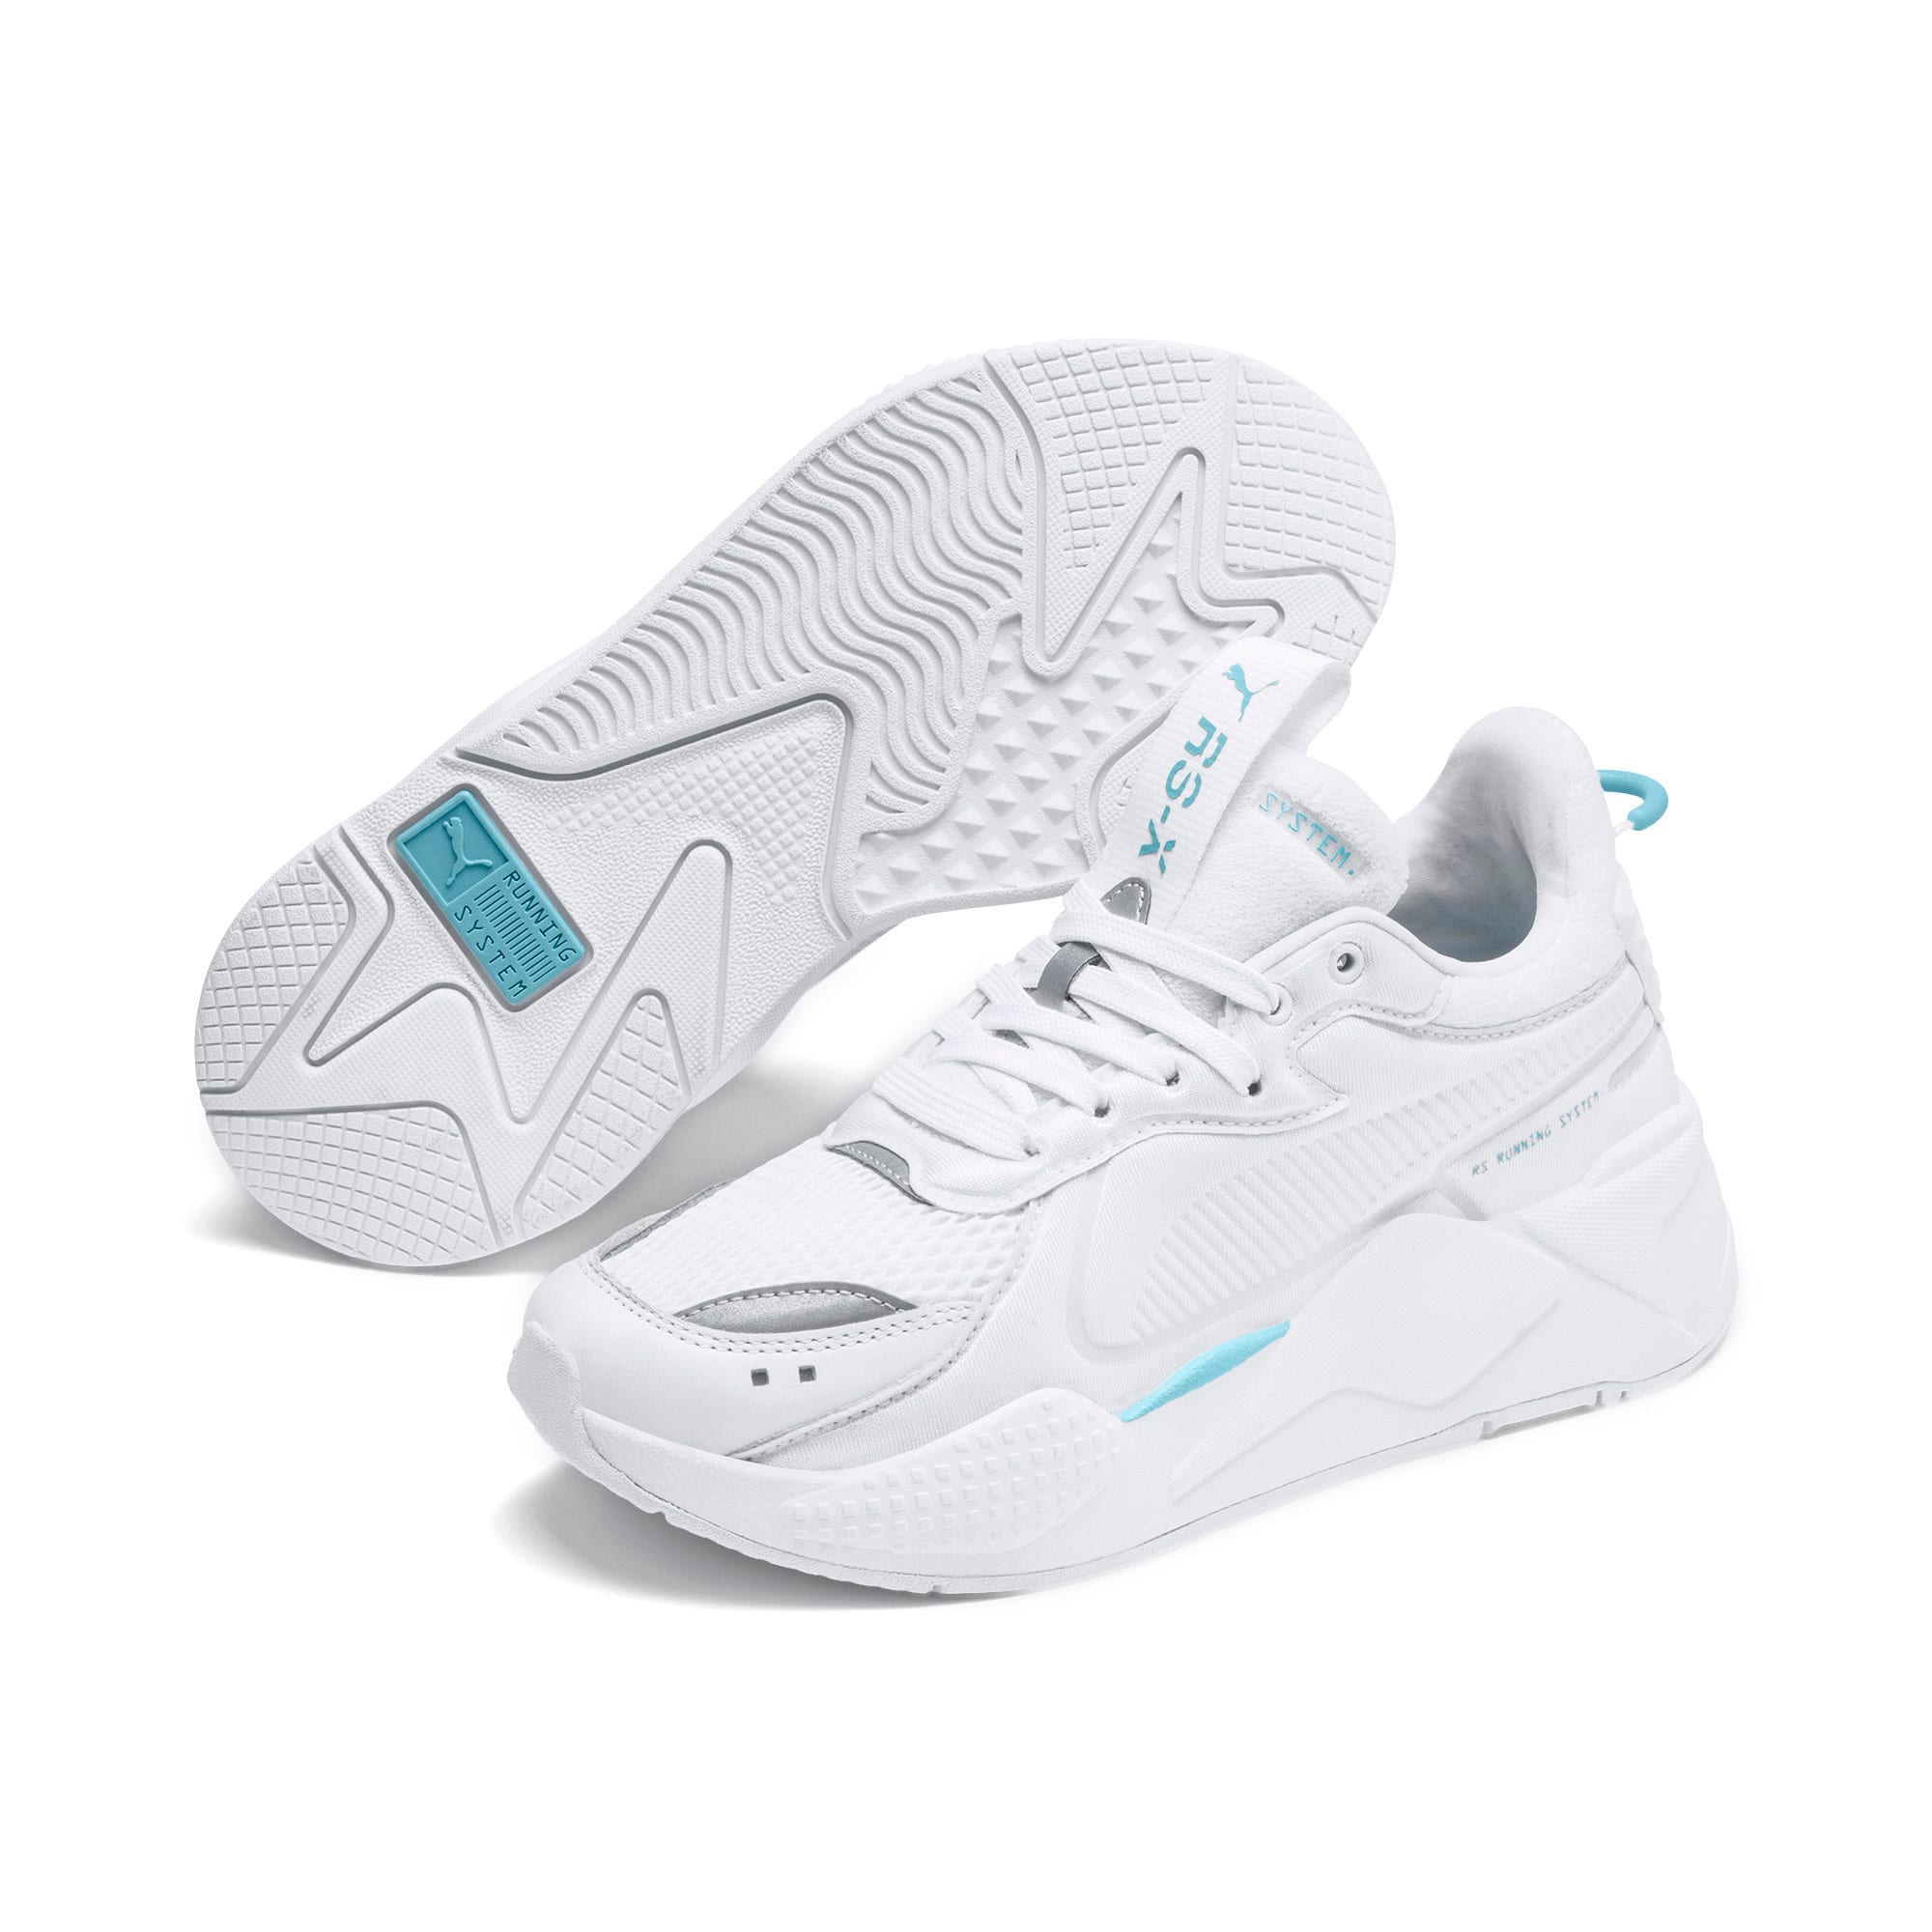 Thumbnail 3 of RS-X Softcase Trainers, Puma White-Milky Blue, medium